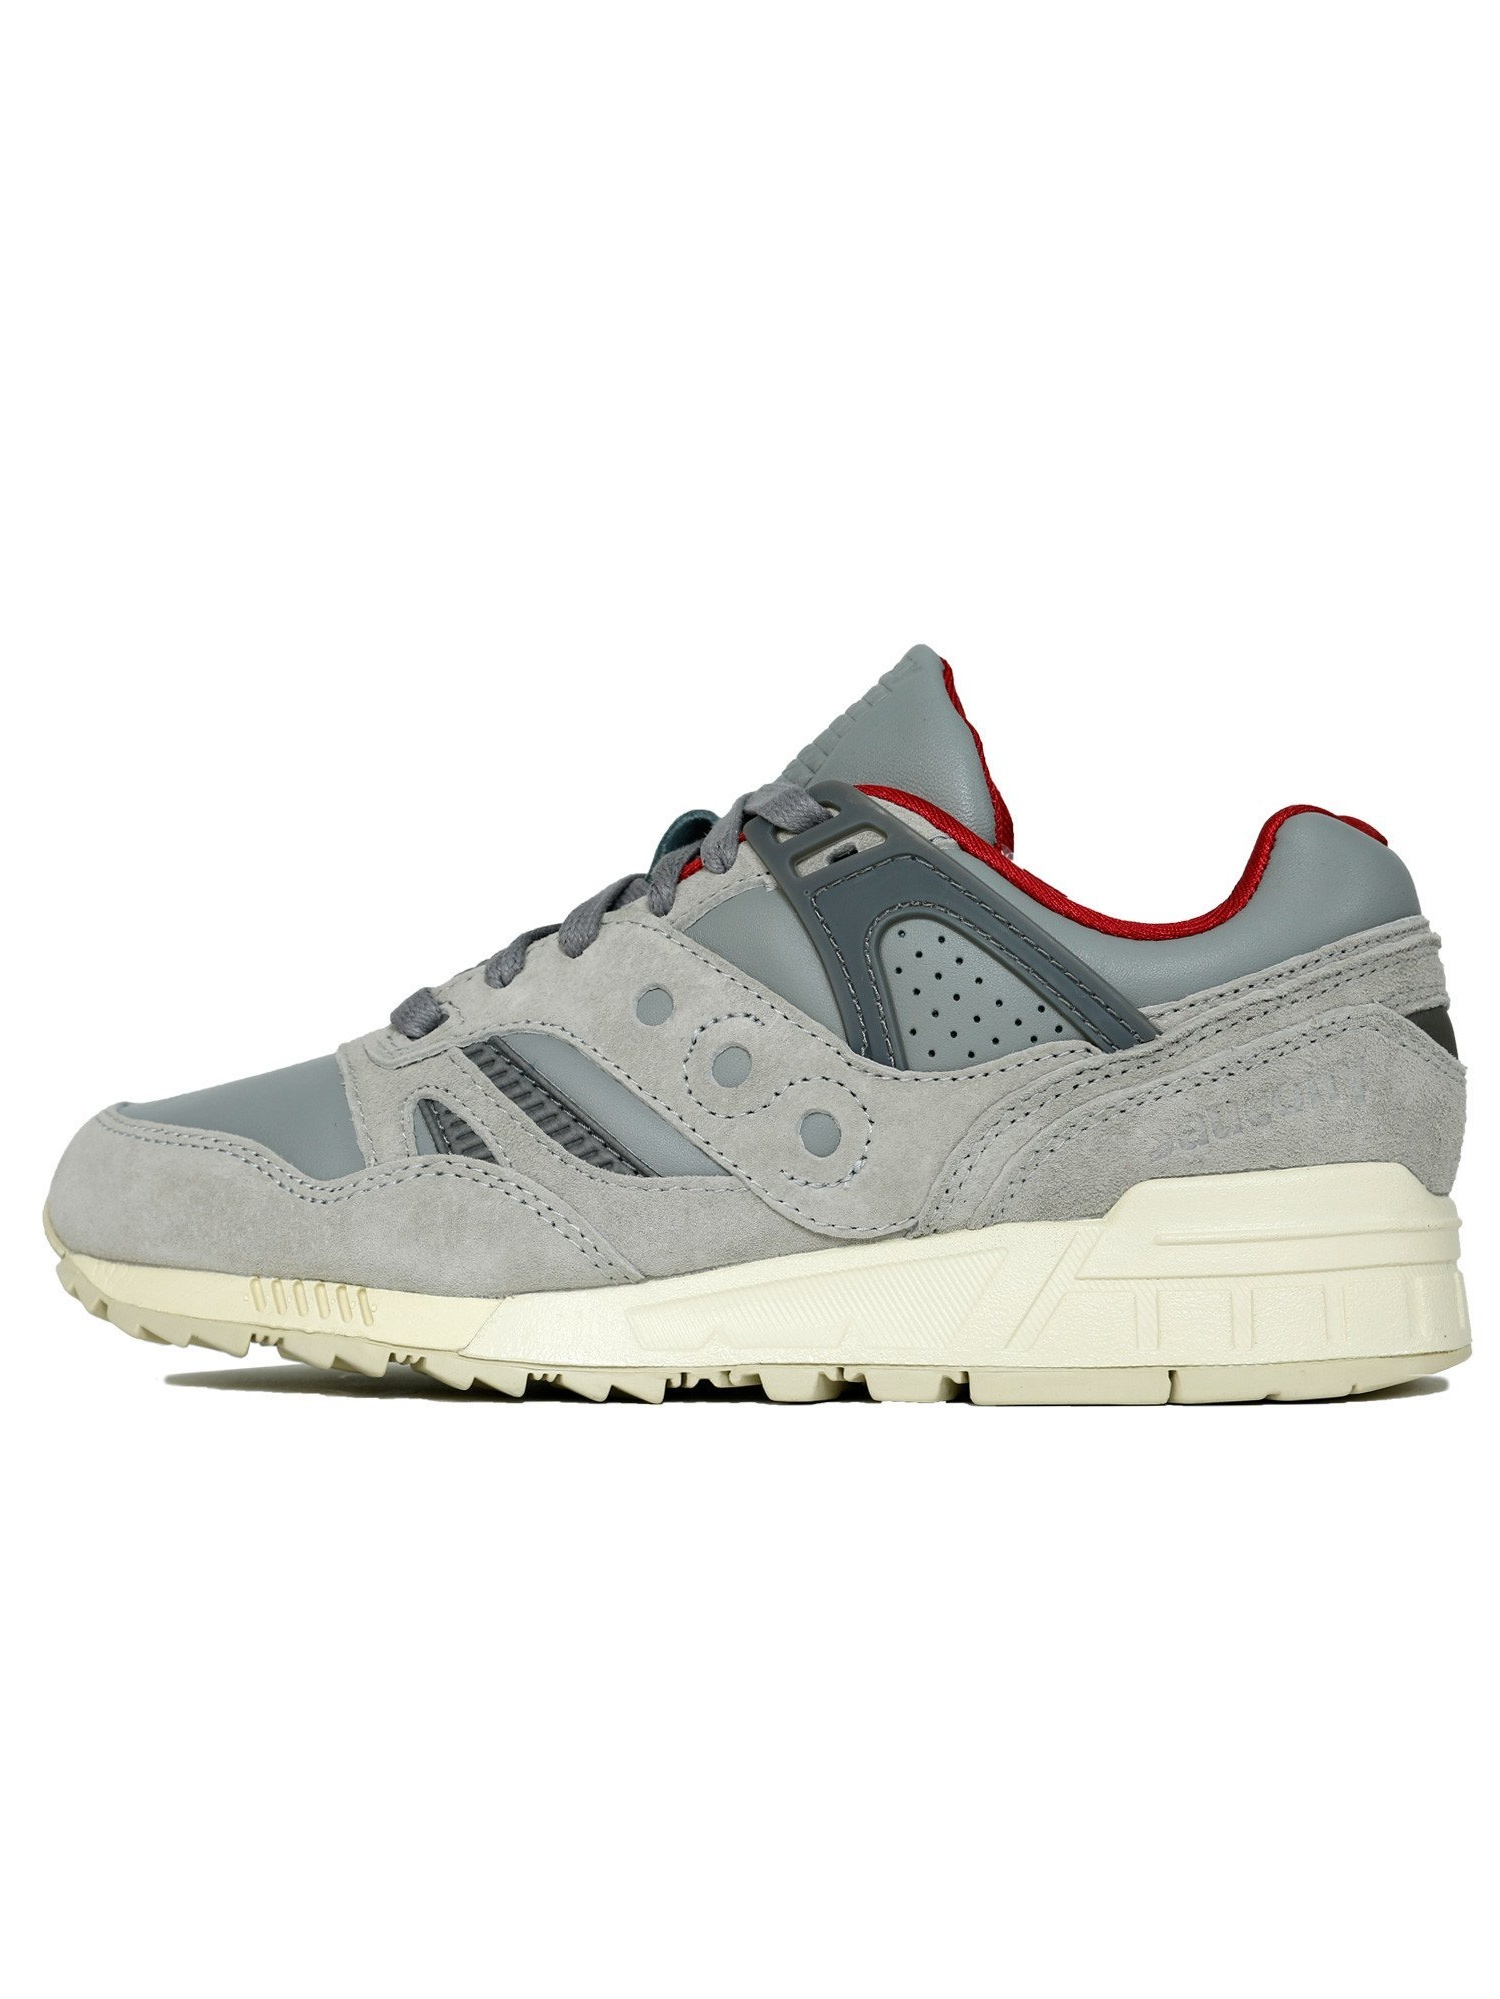 Mens Saucony Grid SD Public Gardens Grey Cream White Red S70263-1 by